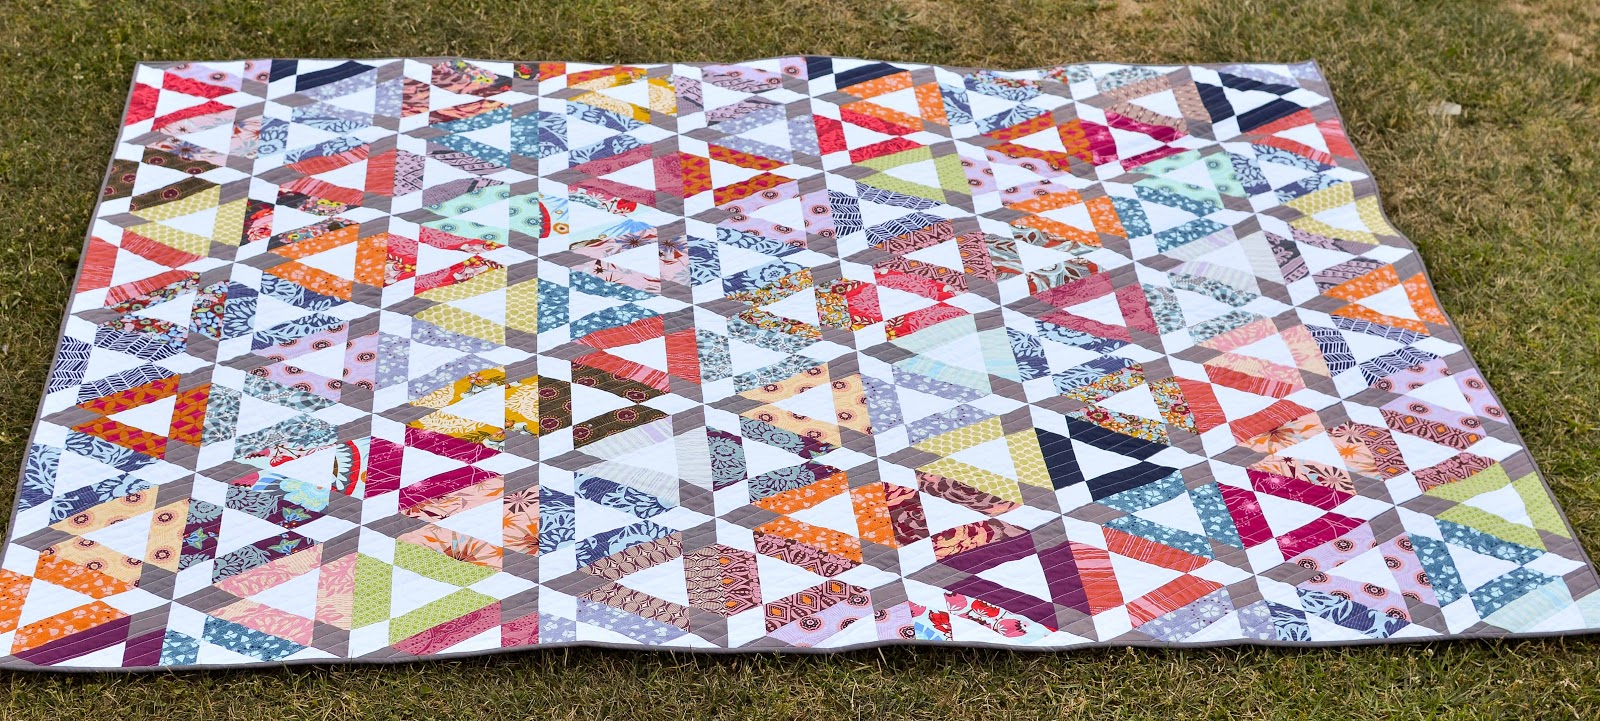 Hopscotch Quilt Finished Kitchen Table Quilting